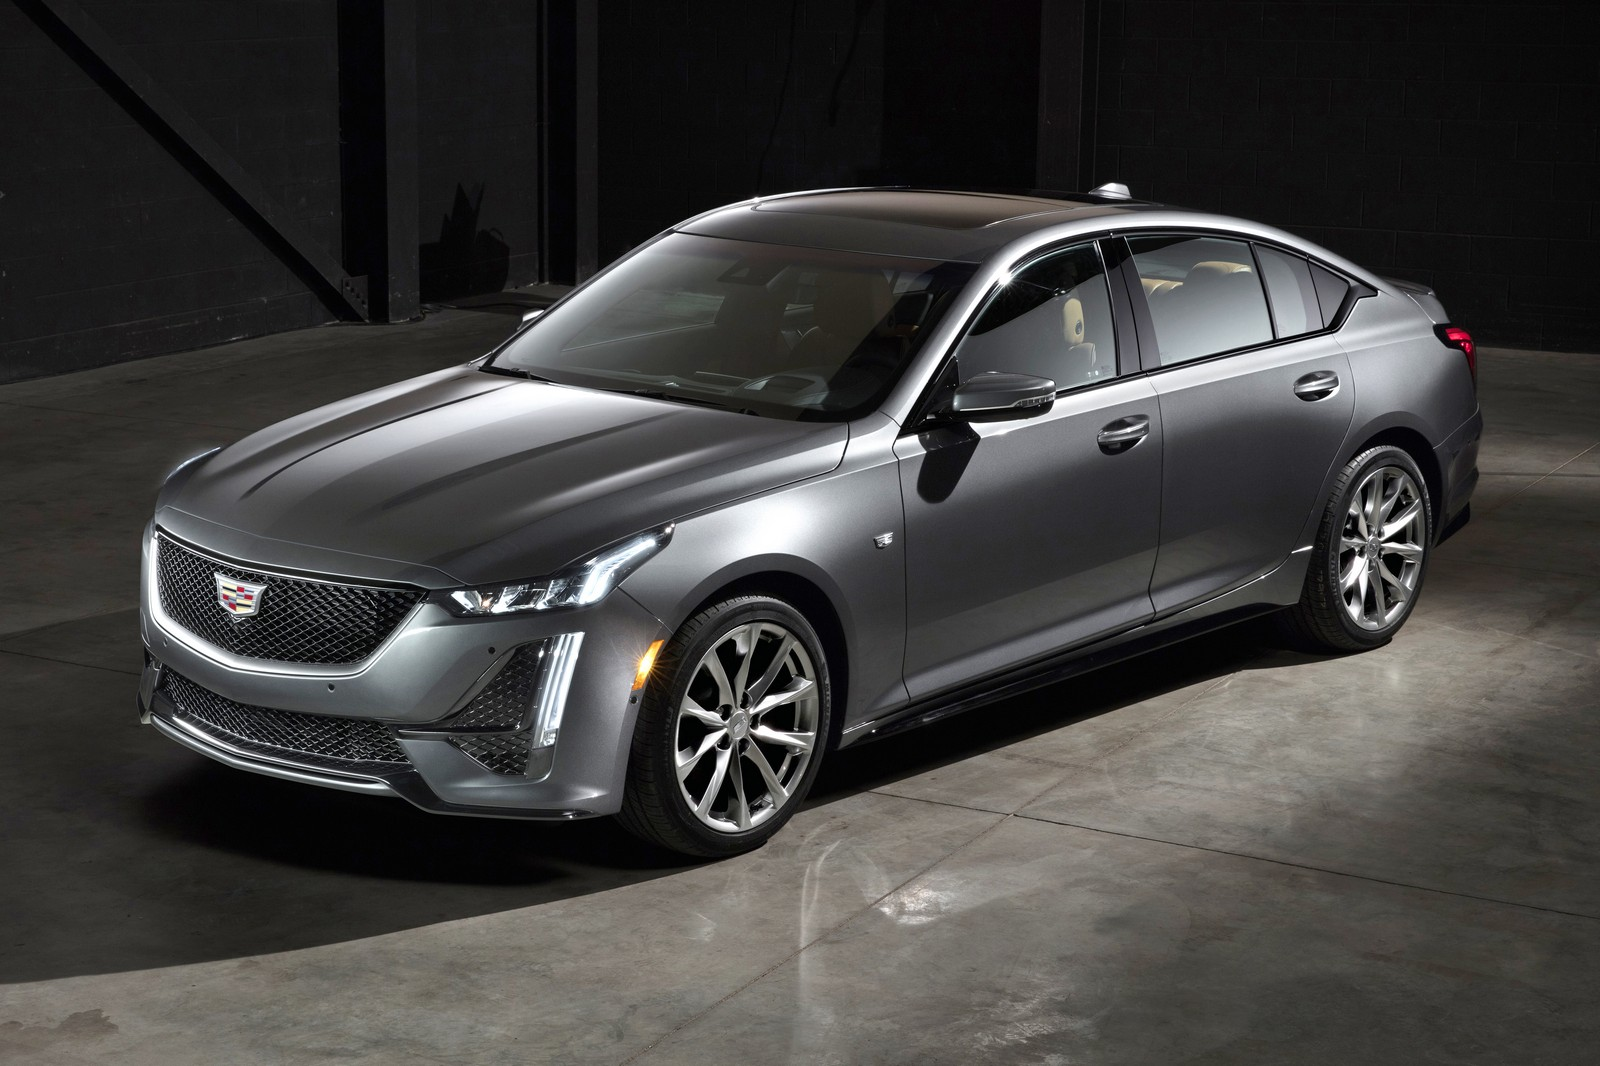 The CT5 Sport showcases Cadillac's unique expertise in craftin